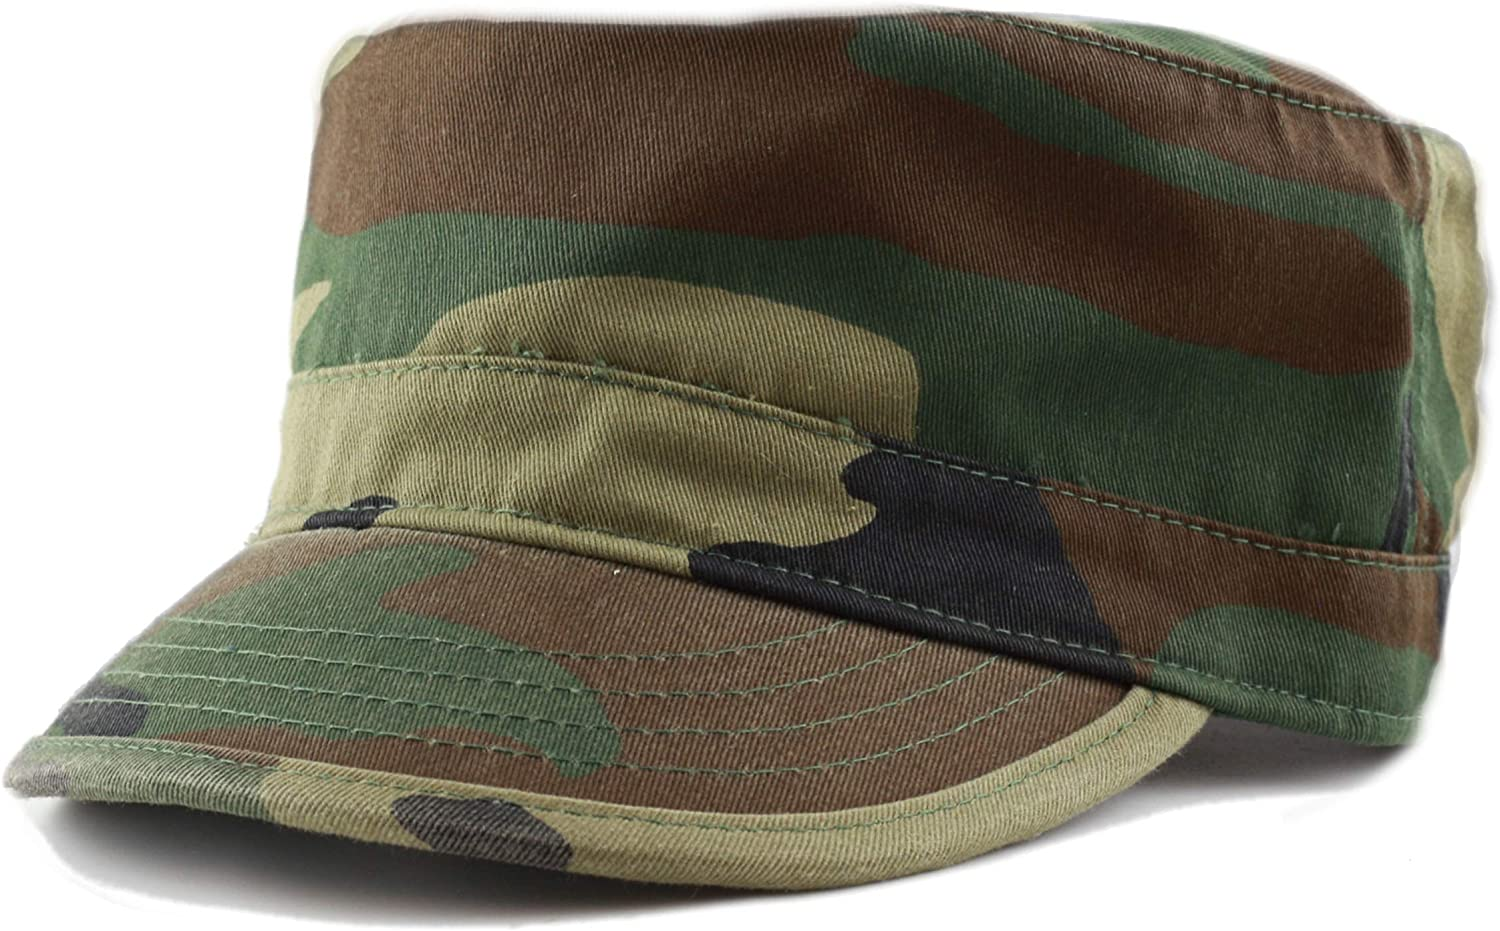 85ad27d8 THE HAT DEPOT Cadet Army Washed Cotton Basic Cap Cap Cap Military Style Hat  e7642b